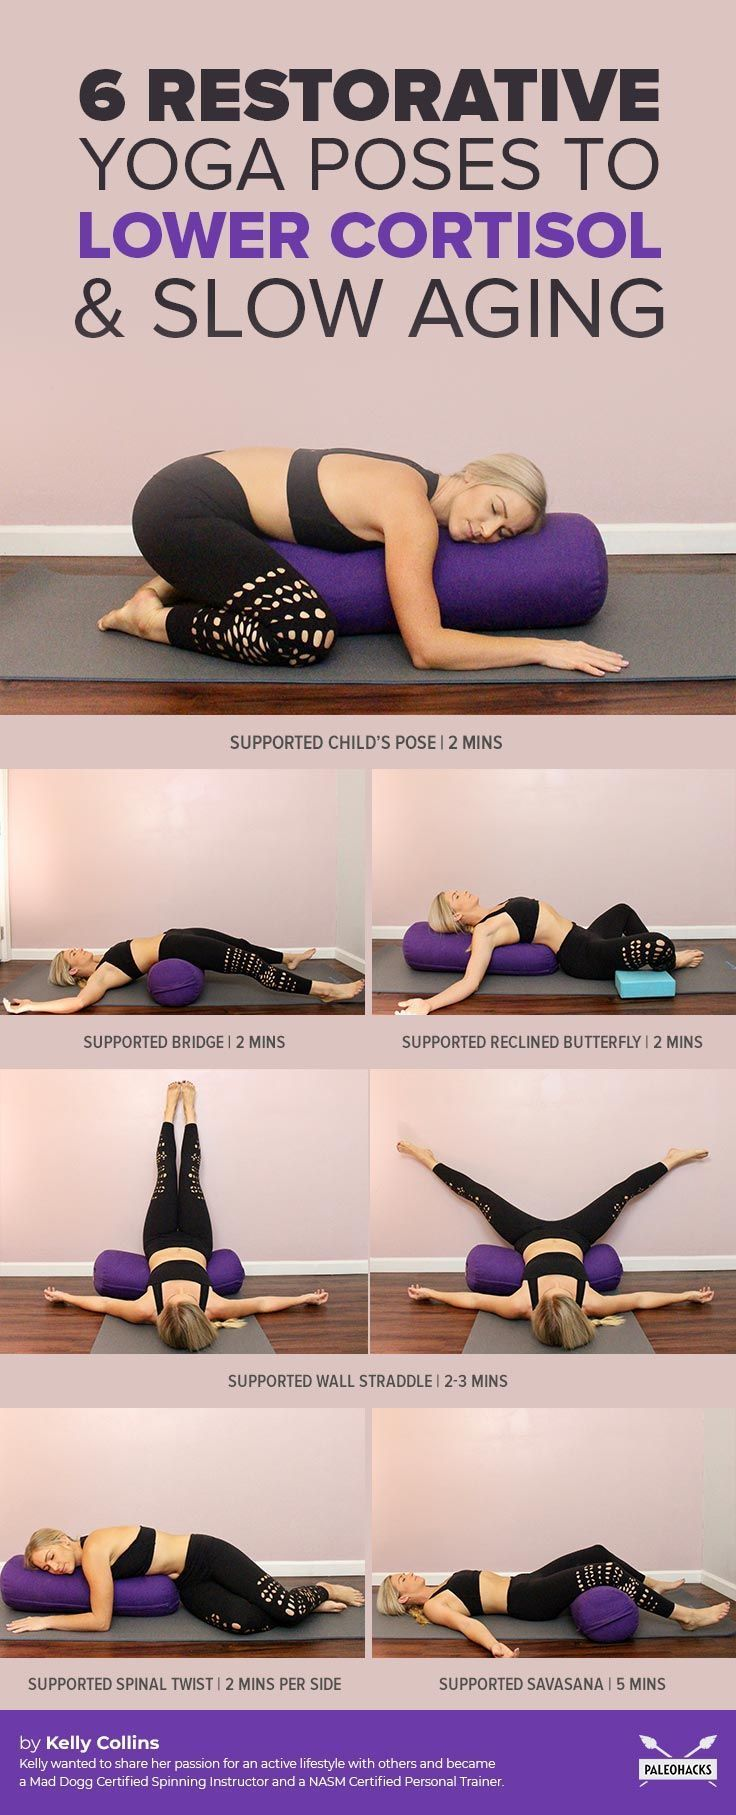 Tough day? Try this calming, restorative yoga routine to naturally lower your co...